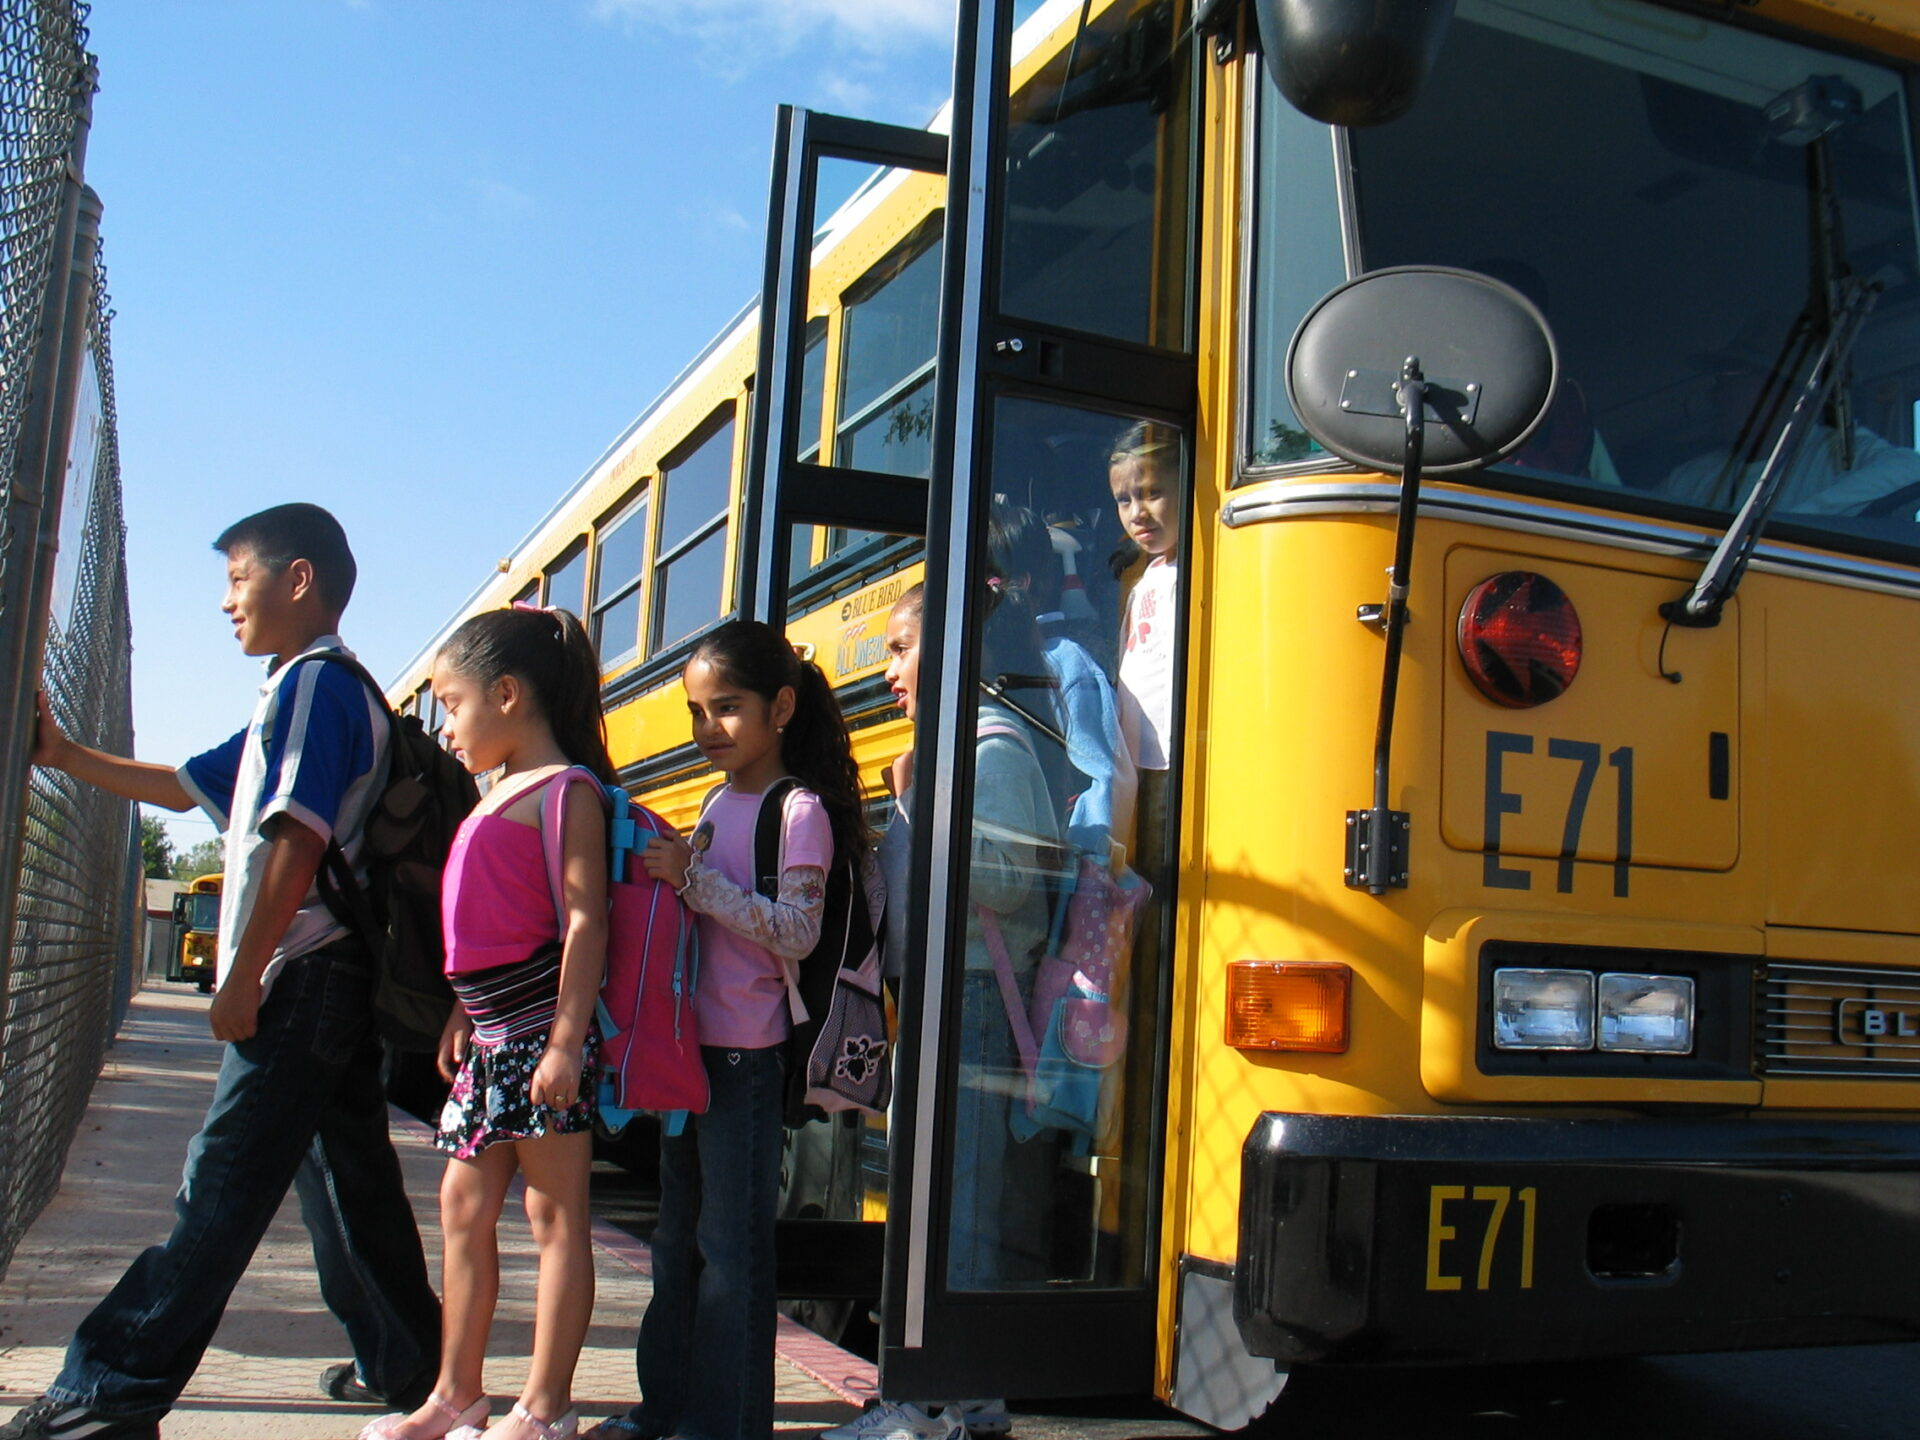 School bus safety is a top priority in Tempe Elementary and Kyrene districts. The safety records provide more than ample proof. (Tempe Elementary Schools courtesy photo)